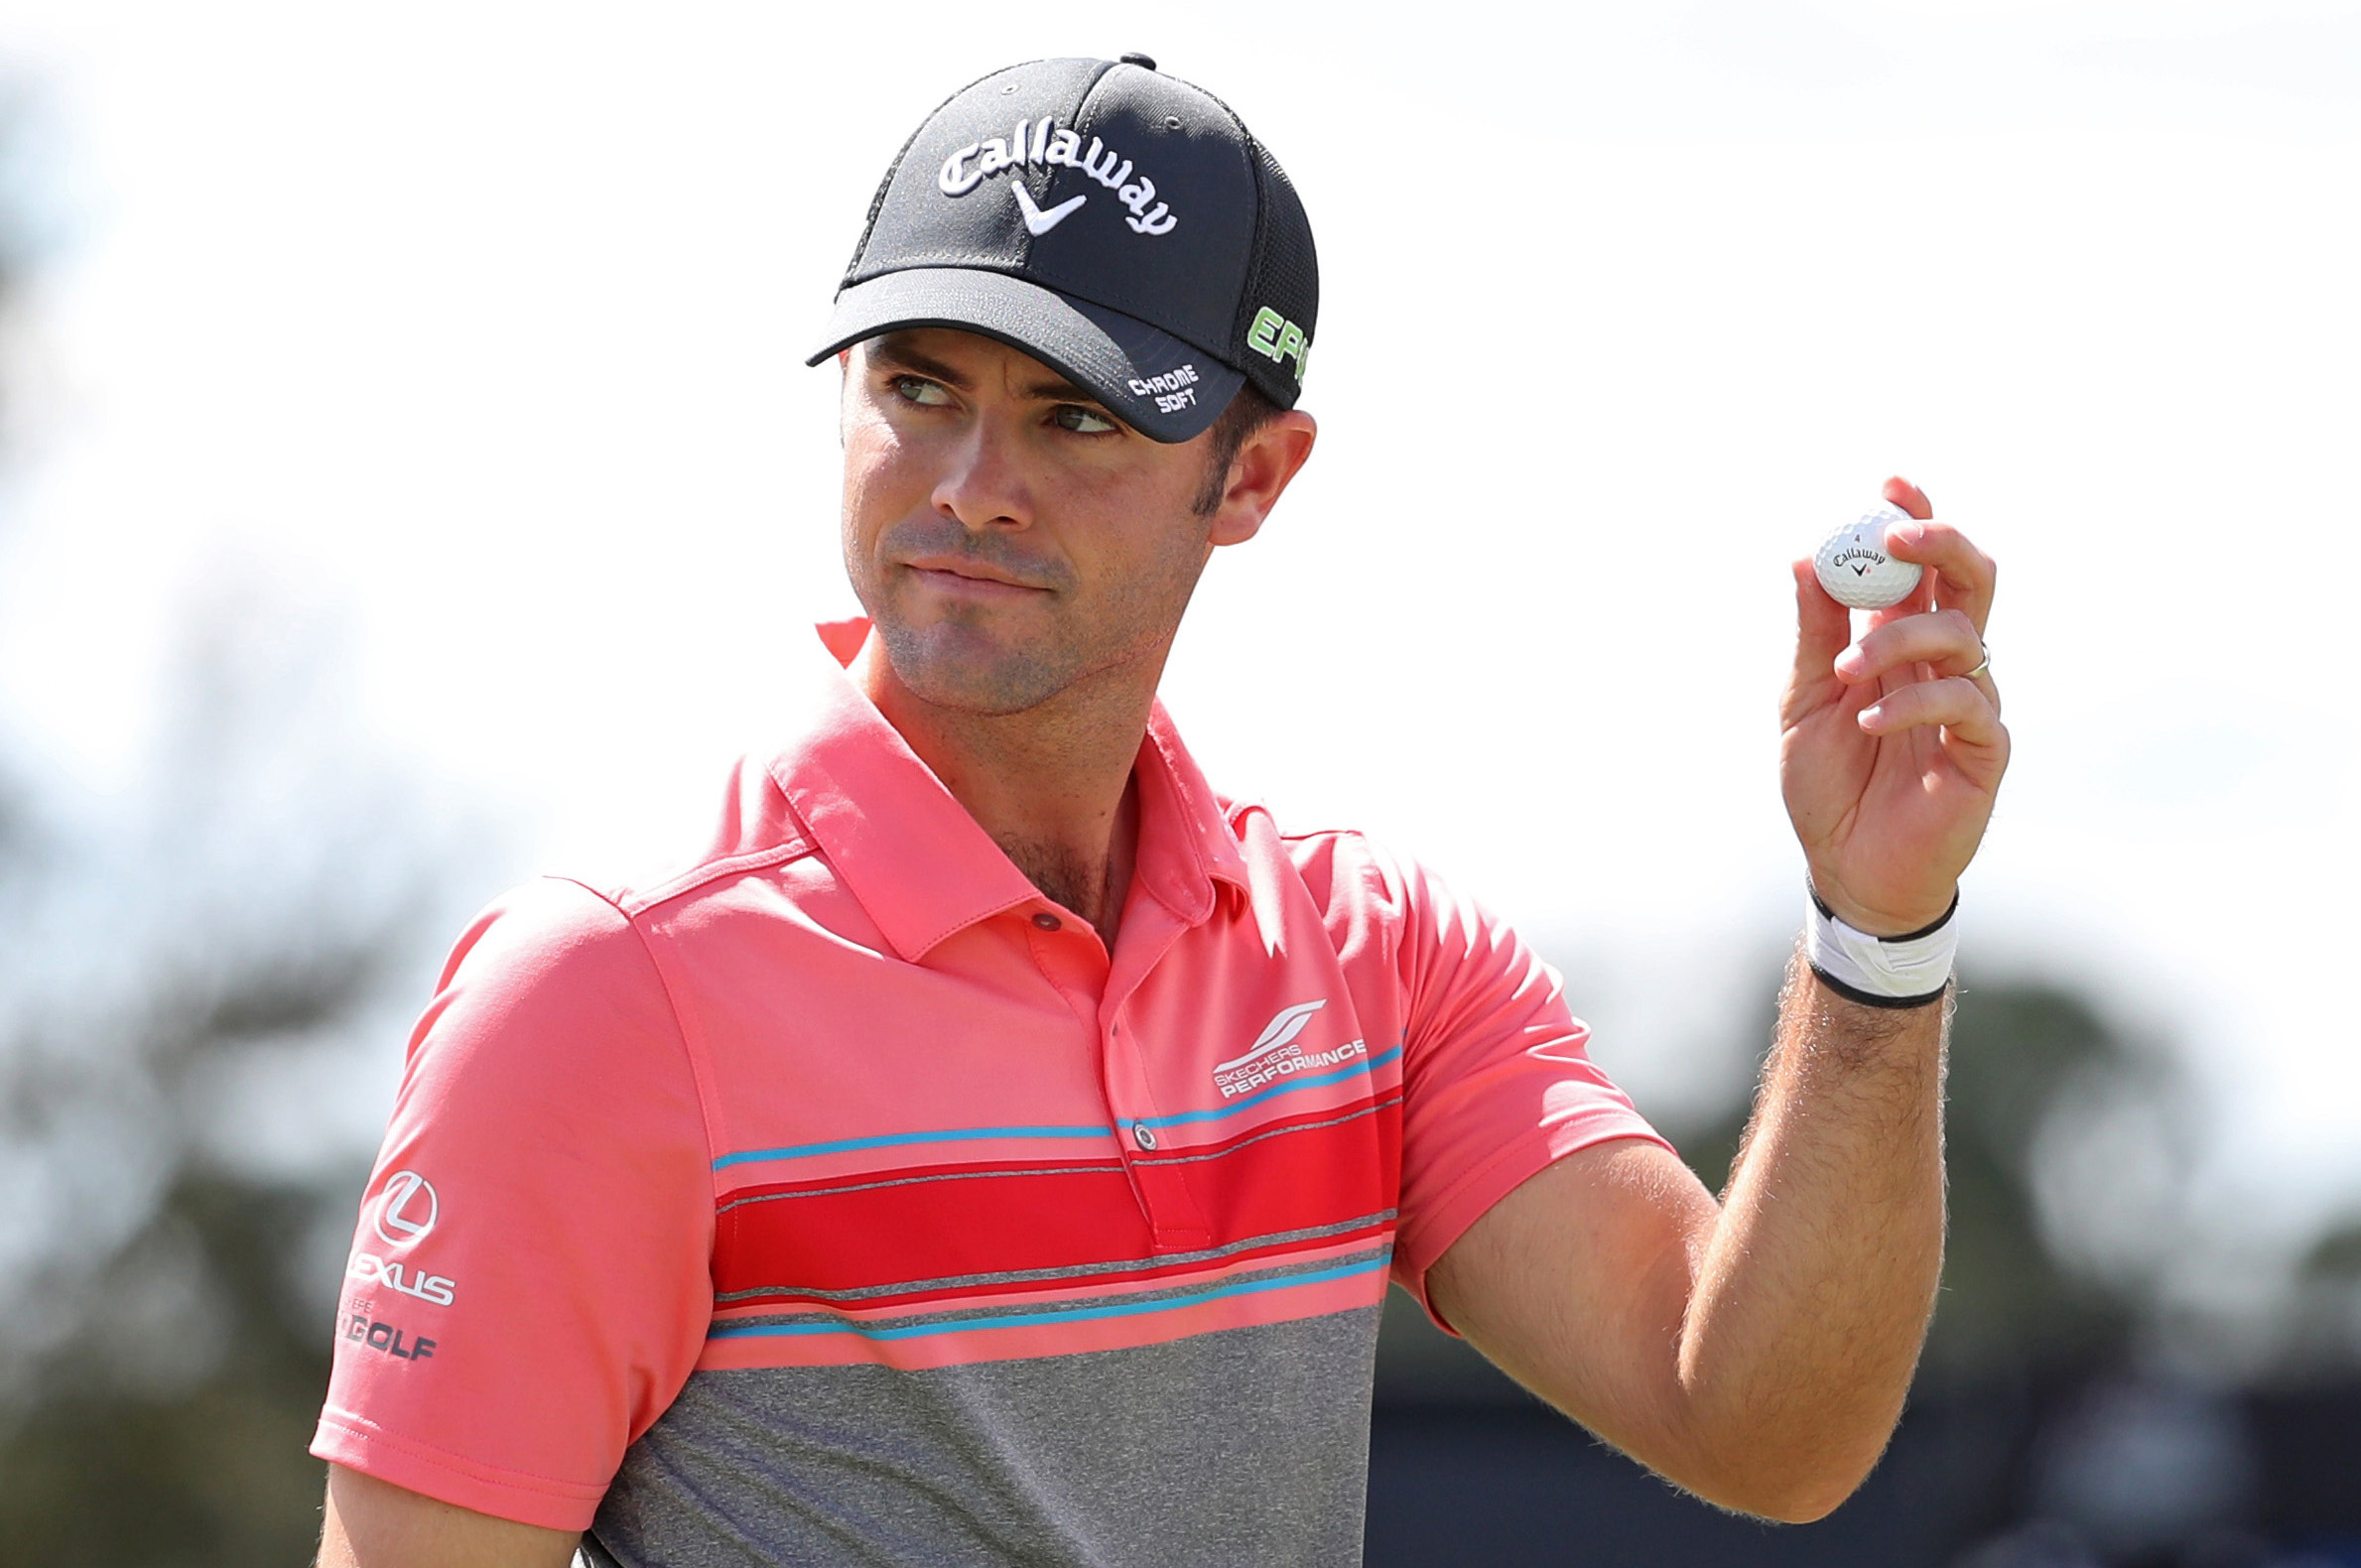 Feb 23, 2017; Palm Beach Gardens, FL, USA; Wesley Bryan reacts to fans after finishing his round on the ninth hole during the first round of The Honda Classic at PGA National (Champion). Mandatory Credit: Jason Getz-USA TODAY Sports